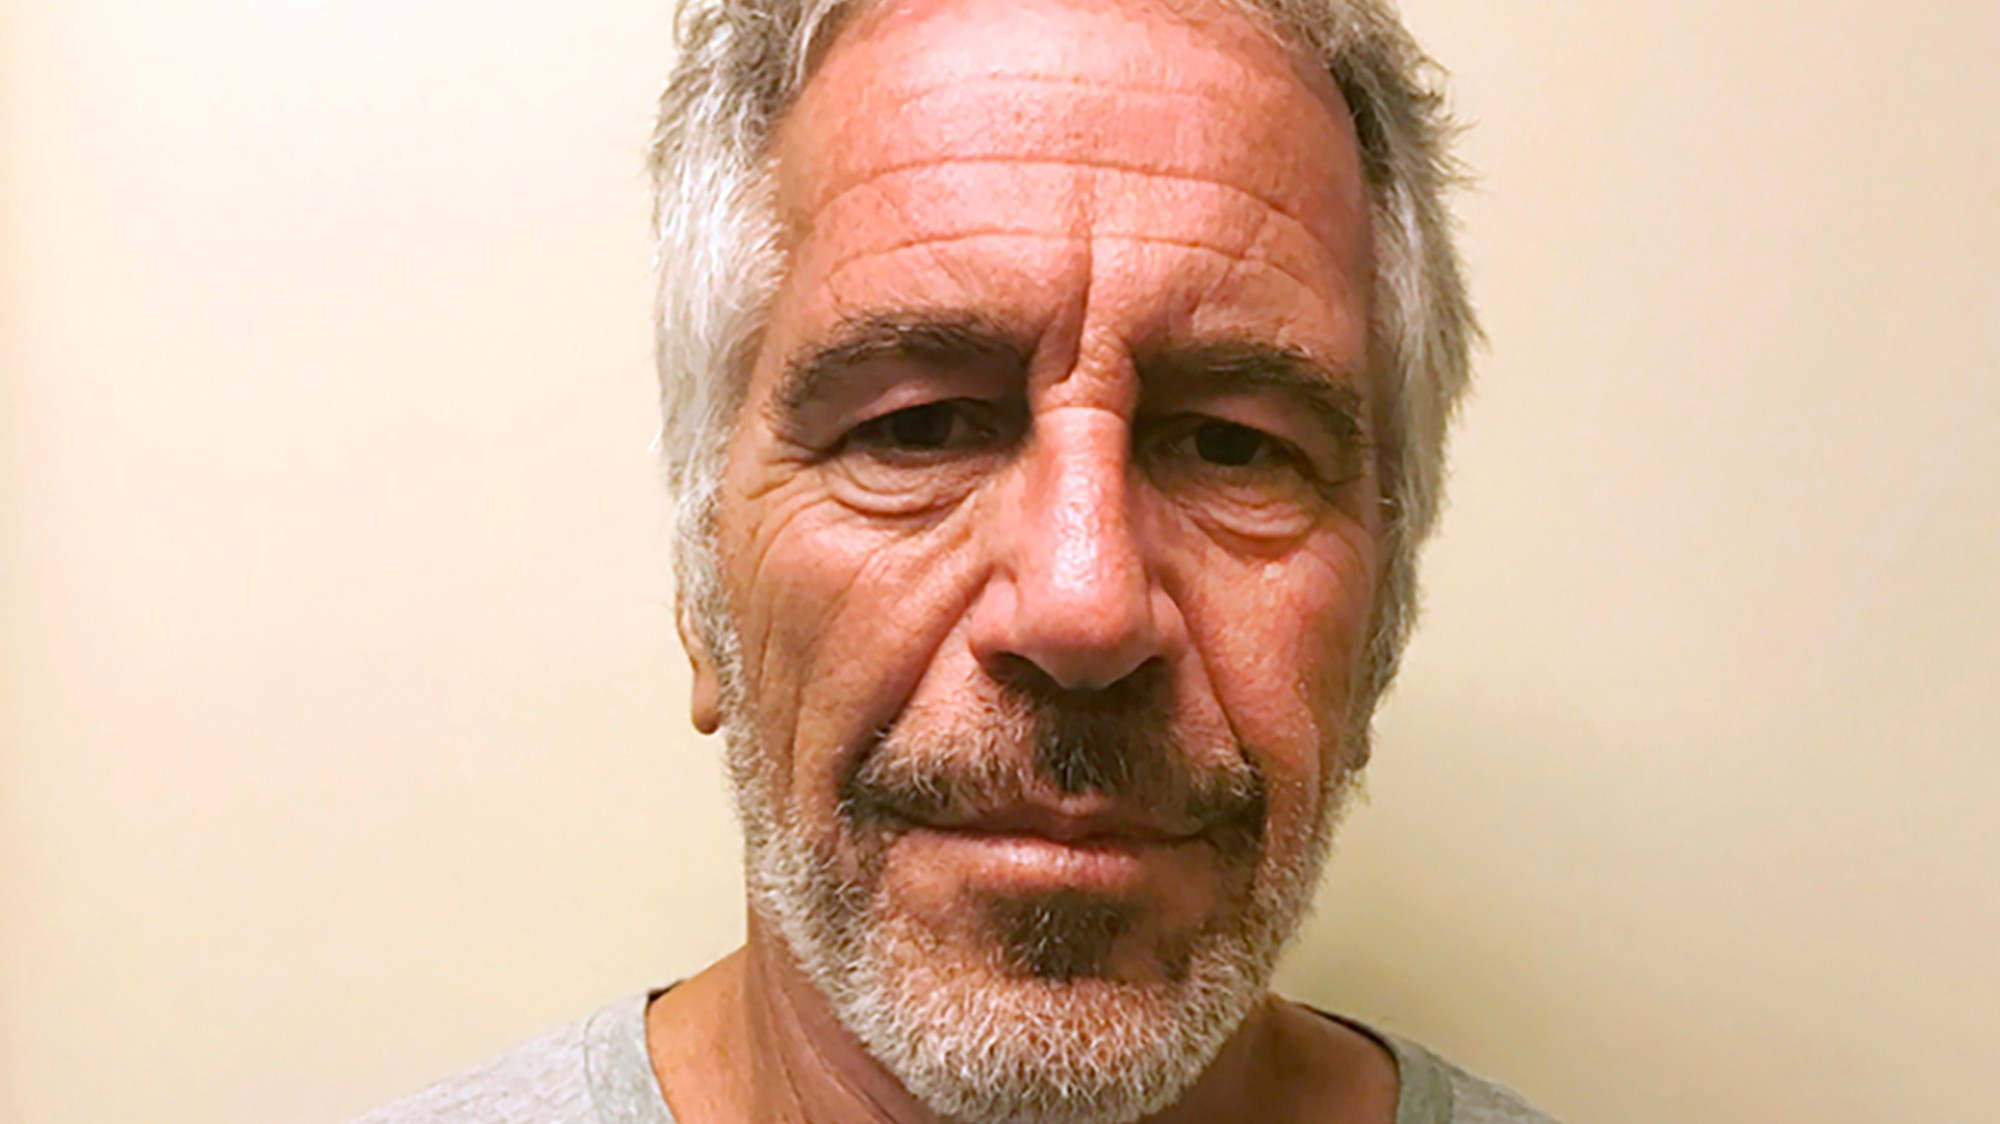 Why Was Jeffrey Epstein Left Alone? The Mystery of the Sex Offender's Jail Suicide